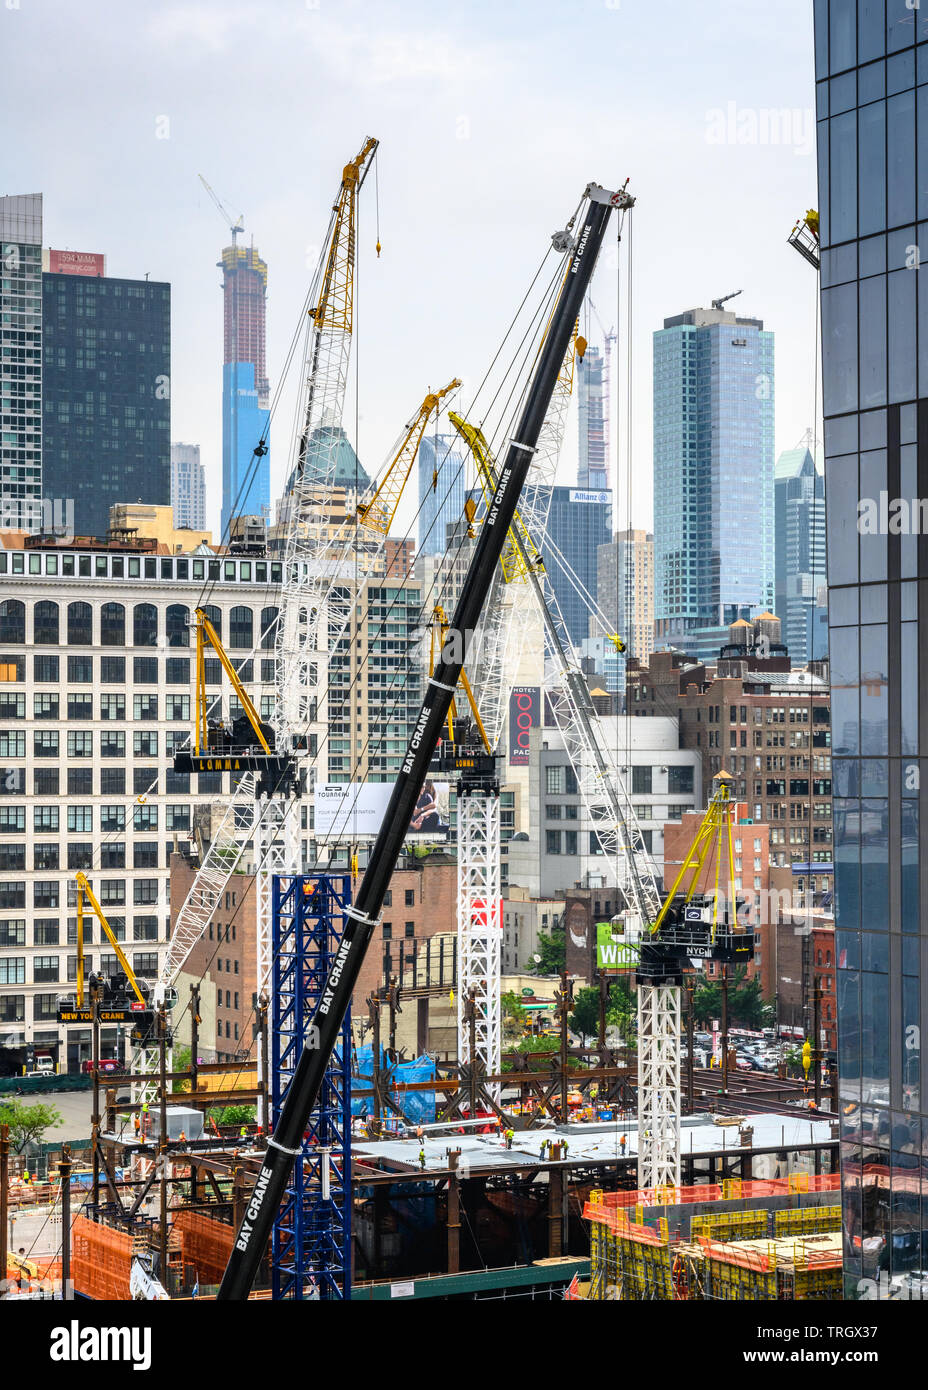 New York, USA,  30 May 2019. Cranes are busy at construction sites in New York city's Hudson Yard  Credit: Enrique Shore/Alamy Stock Photo2019. Stock Photo